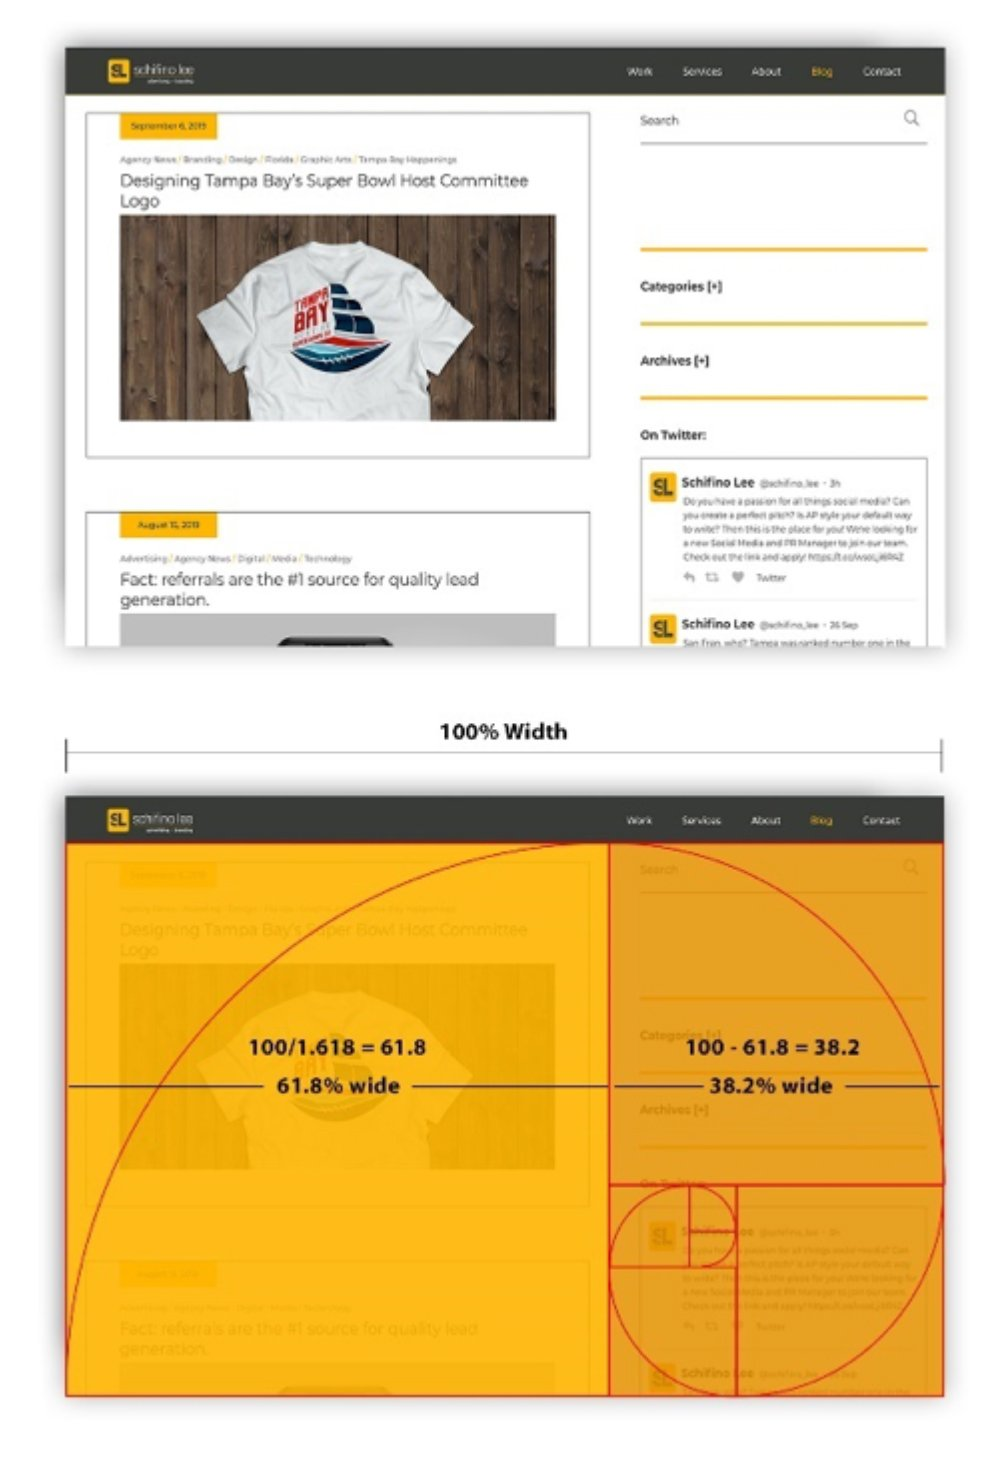 Samples of the Golden mean used in web design